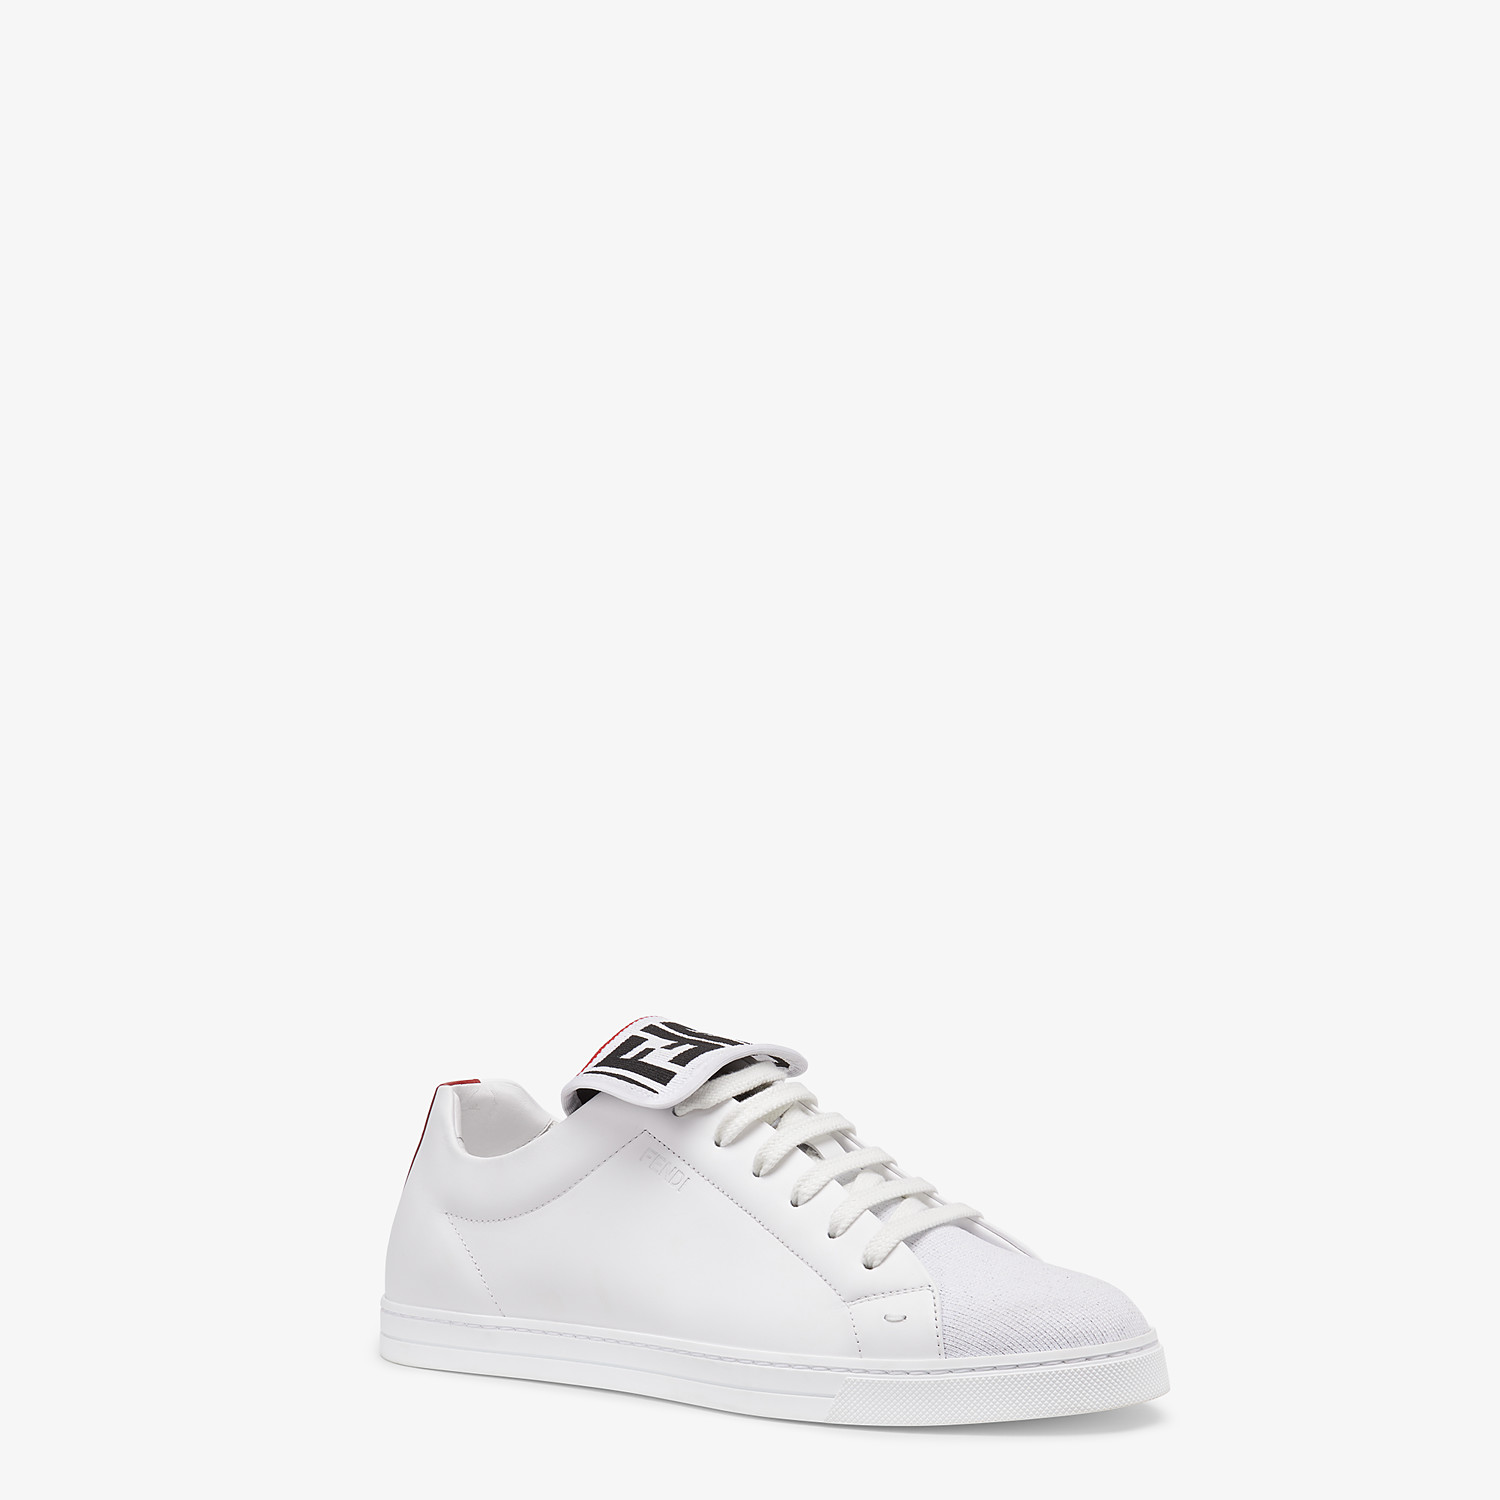 FENDI SNEAKERS - White mesh and leather low-tops - view 2 detail